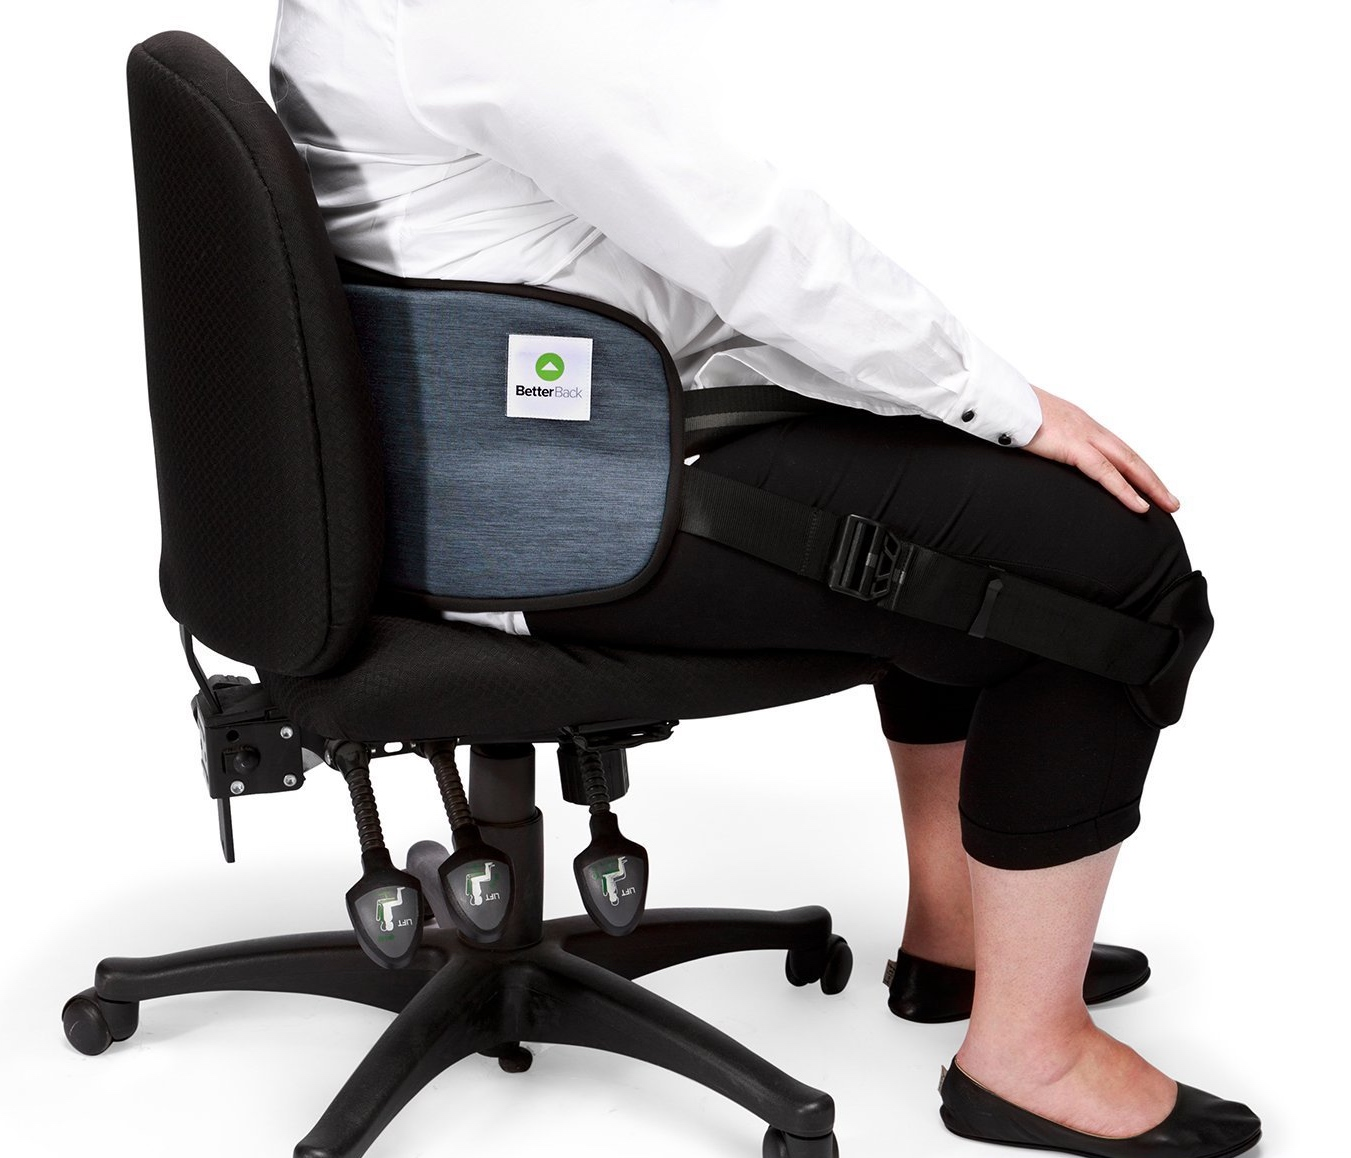 posture chair demo gym owner's manual the 10 best gadgets for pain relief you can buy in 2018